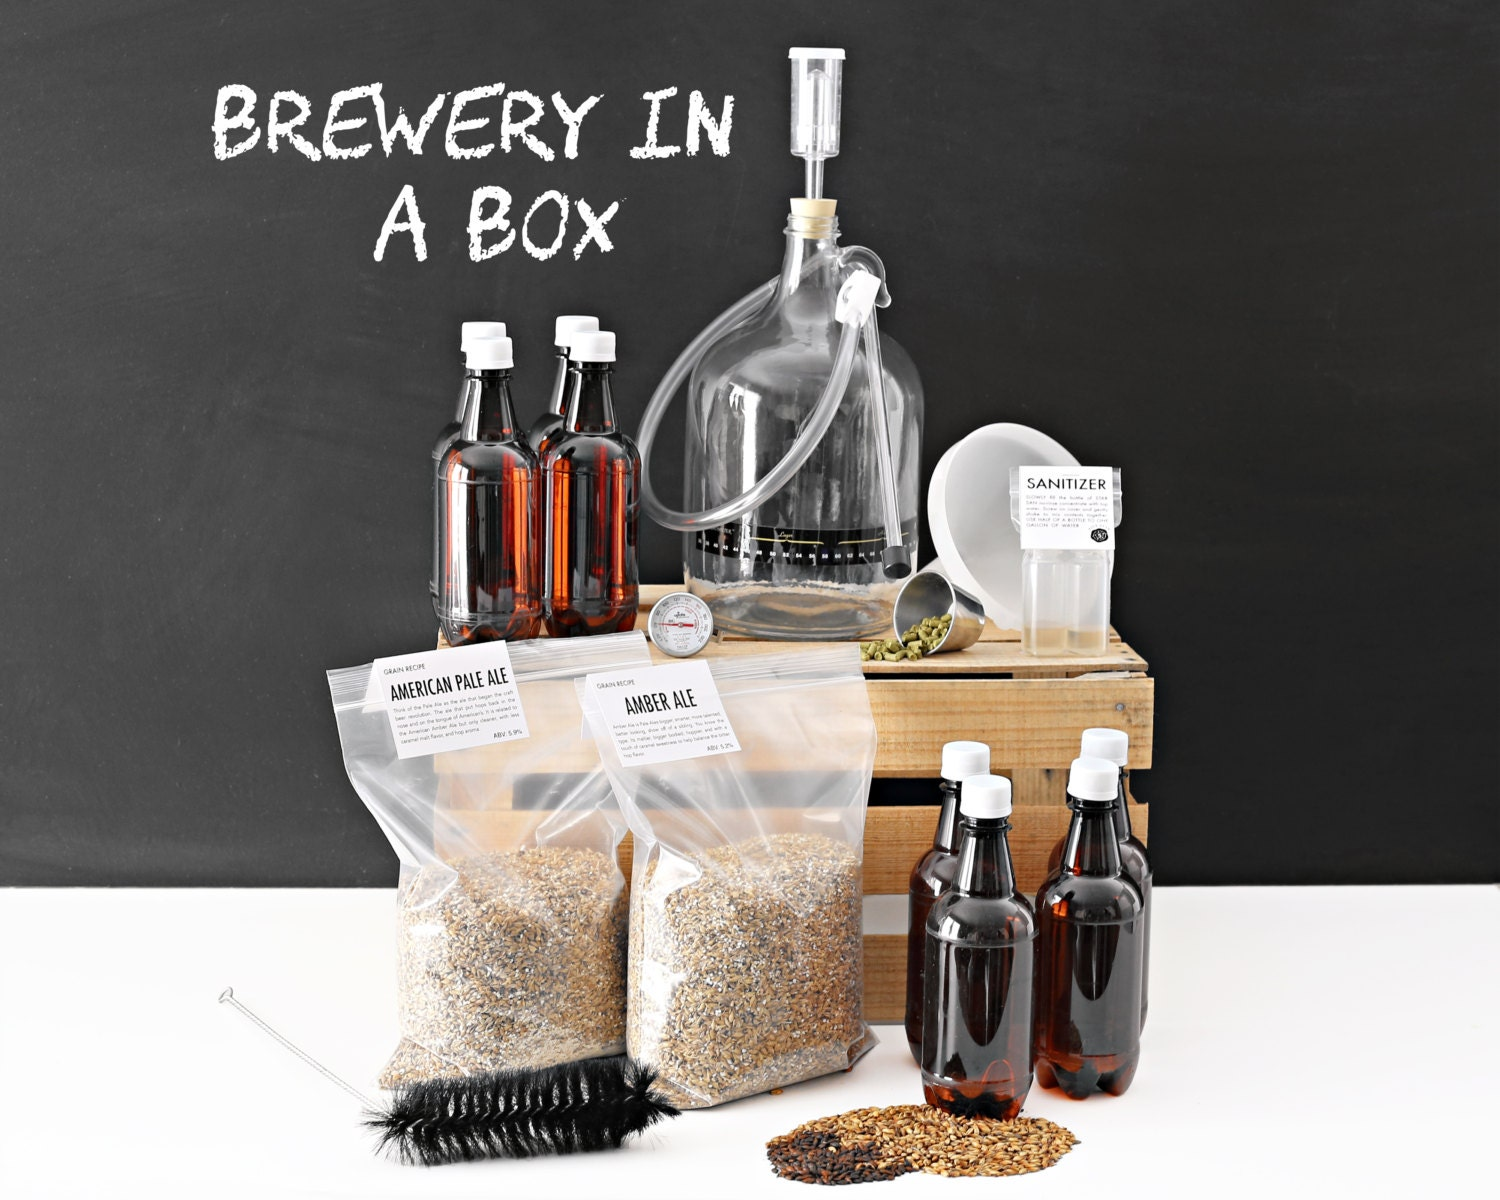 coopers home brew kit instructions